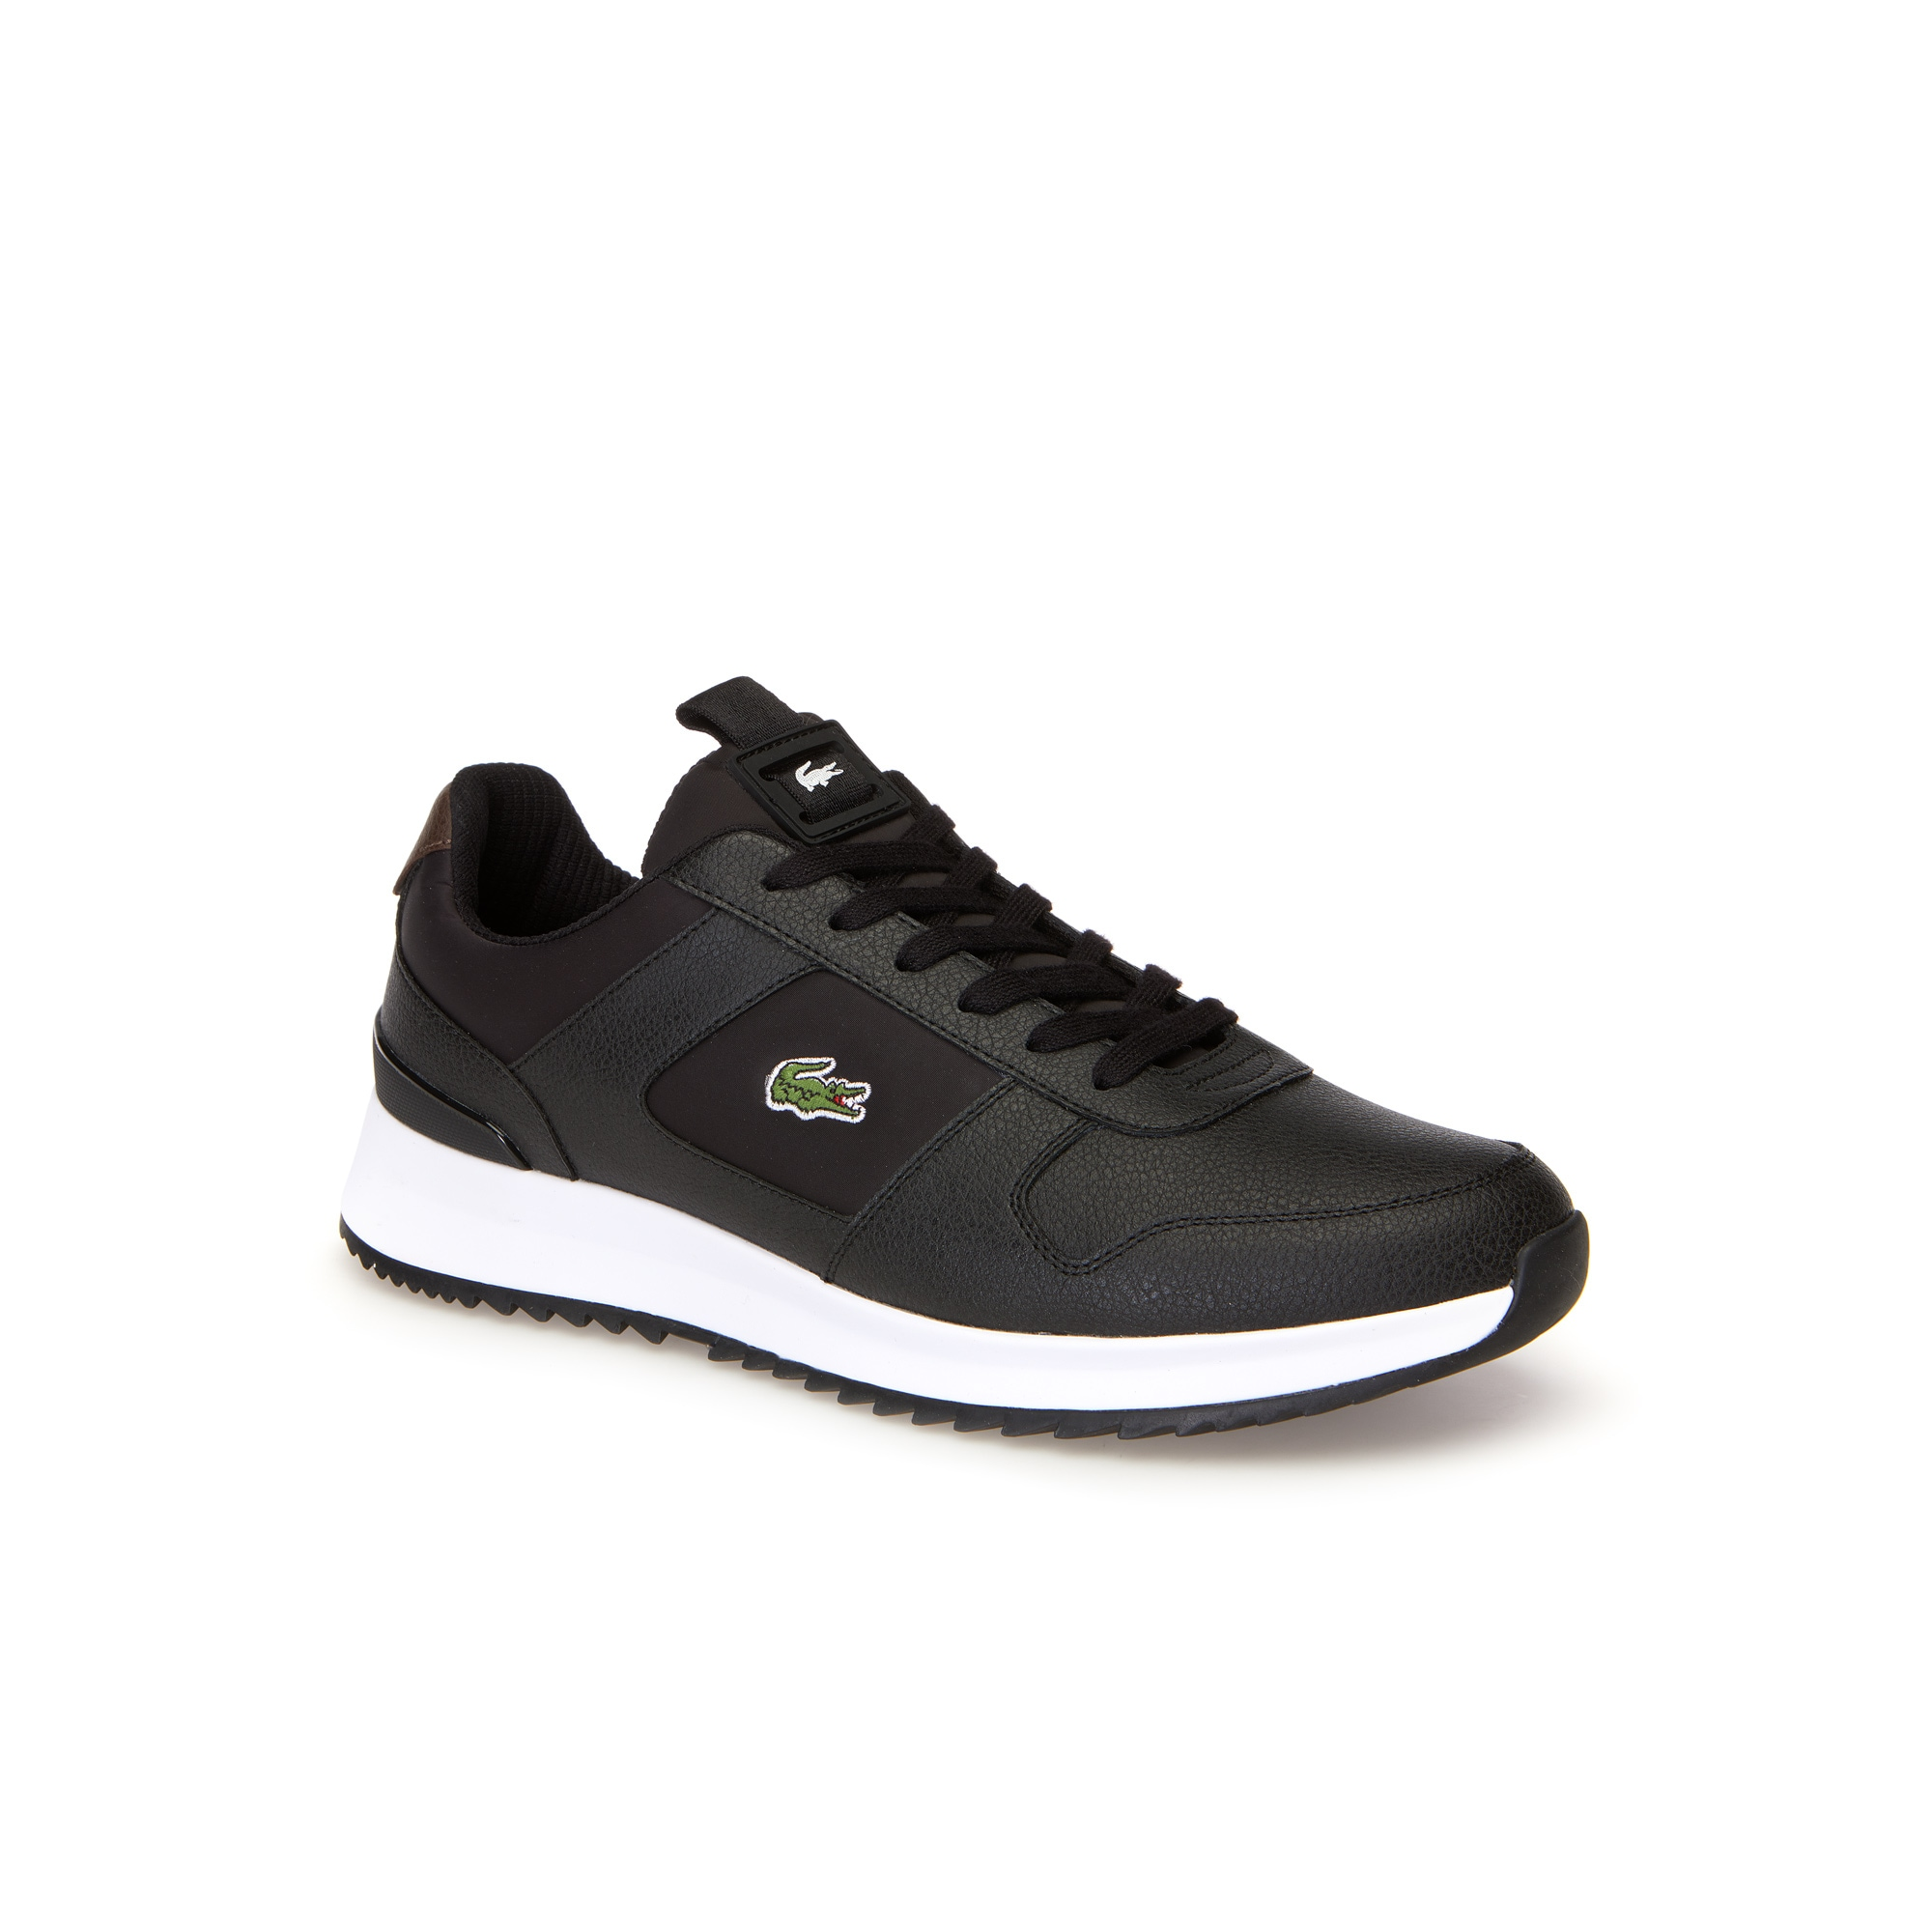 44b4920ff537 Men s Joggeur 2.0 Leather Trainers ...